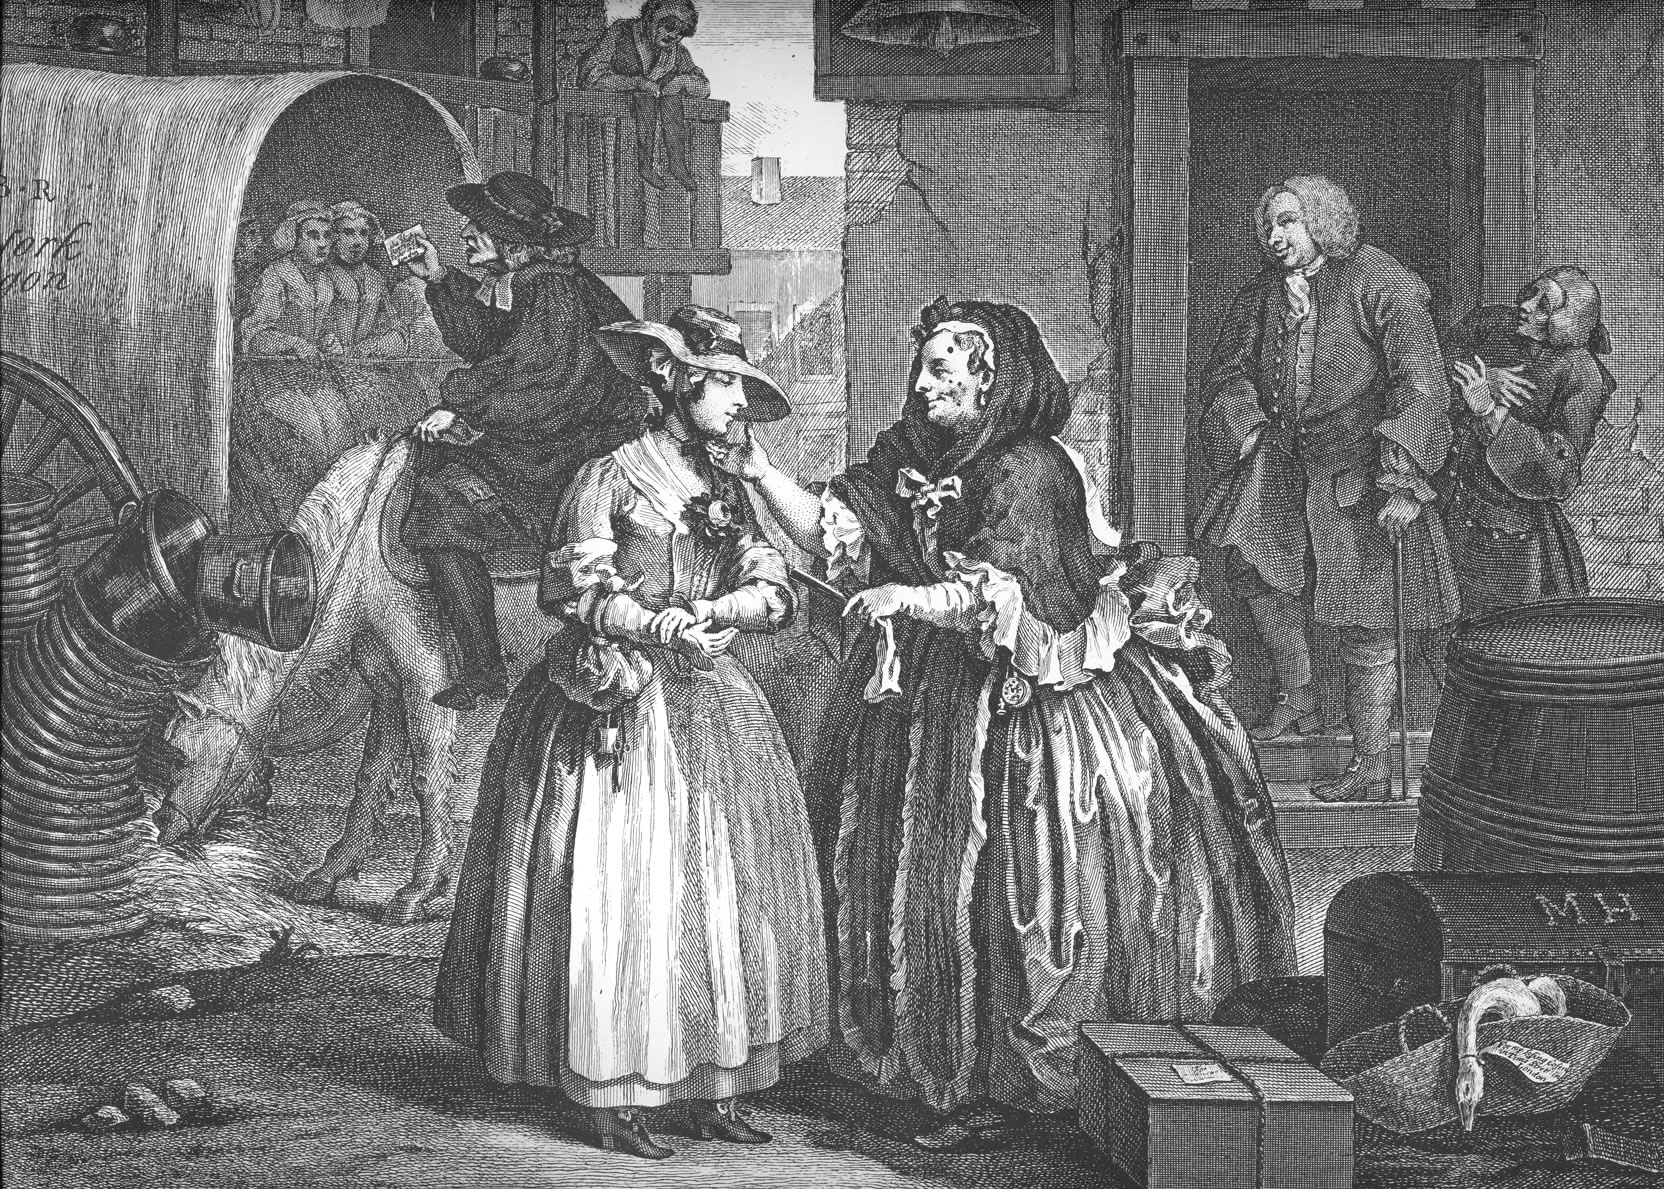 In the foreground, a beautiful young woman stands in front of an older woman, who is examining the younger's face. The older woman is larger and has prominent moles on her face. In the background two men stand in a doorway and appear to be ridiculing a pastor who is preaching from horseback.